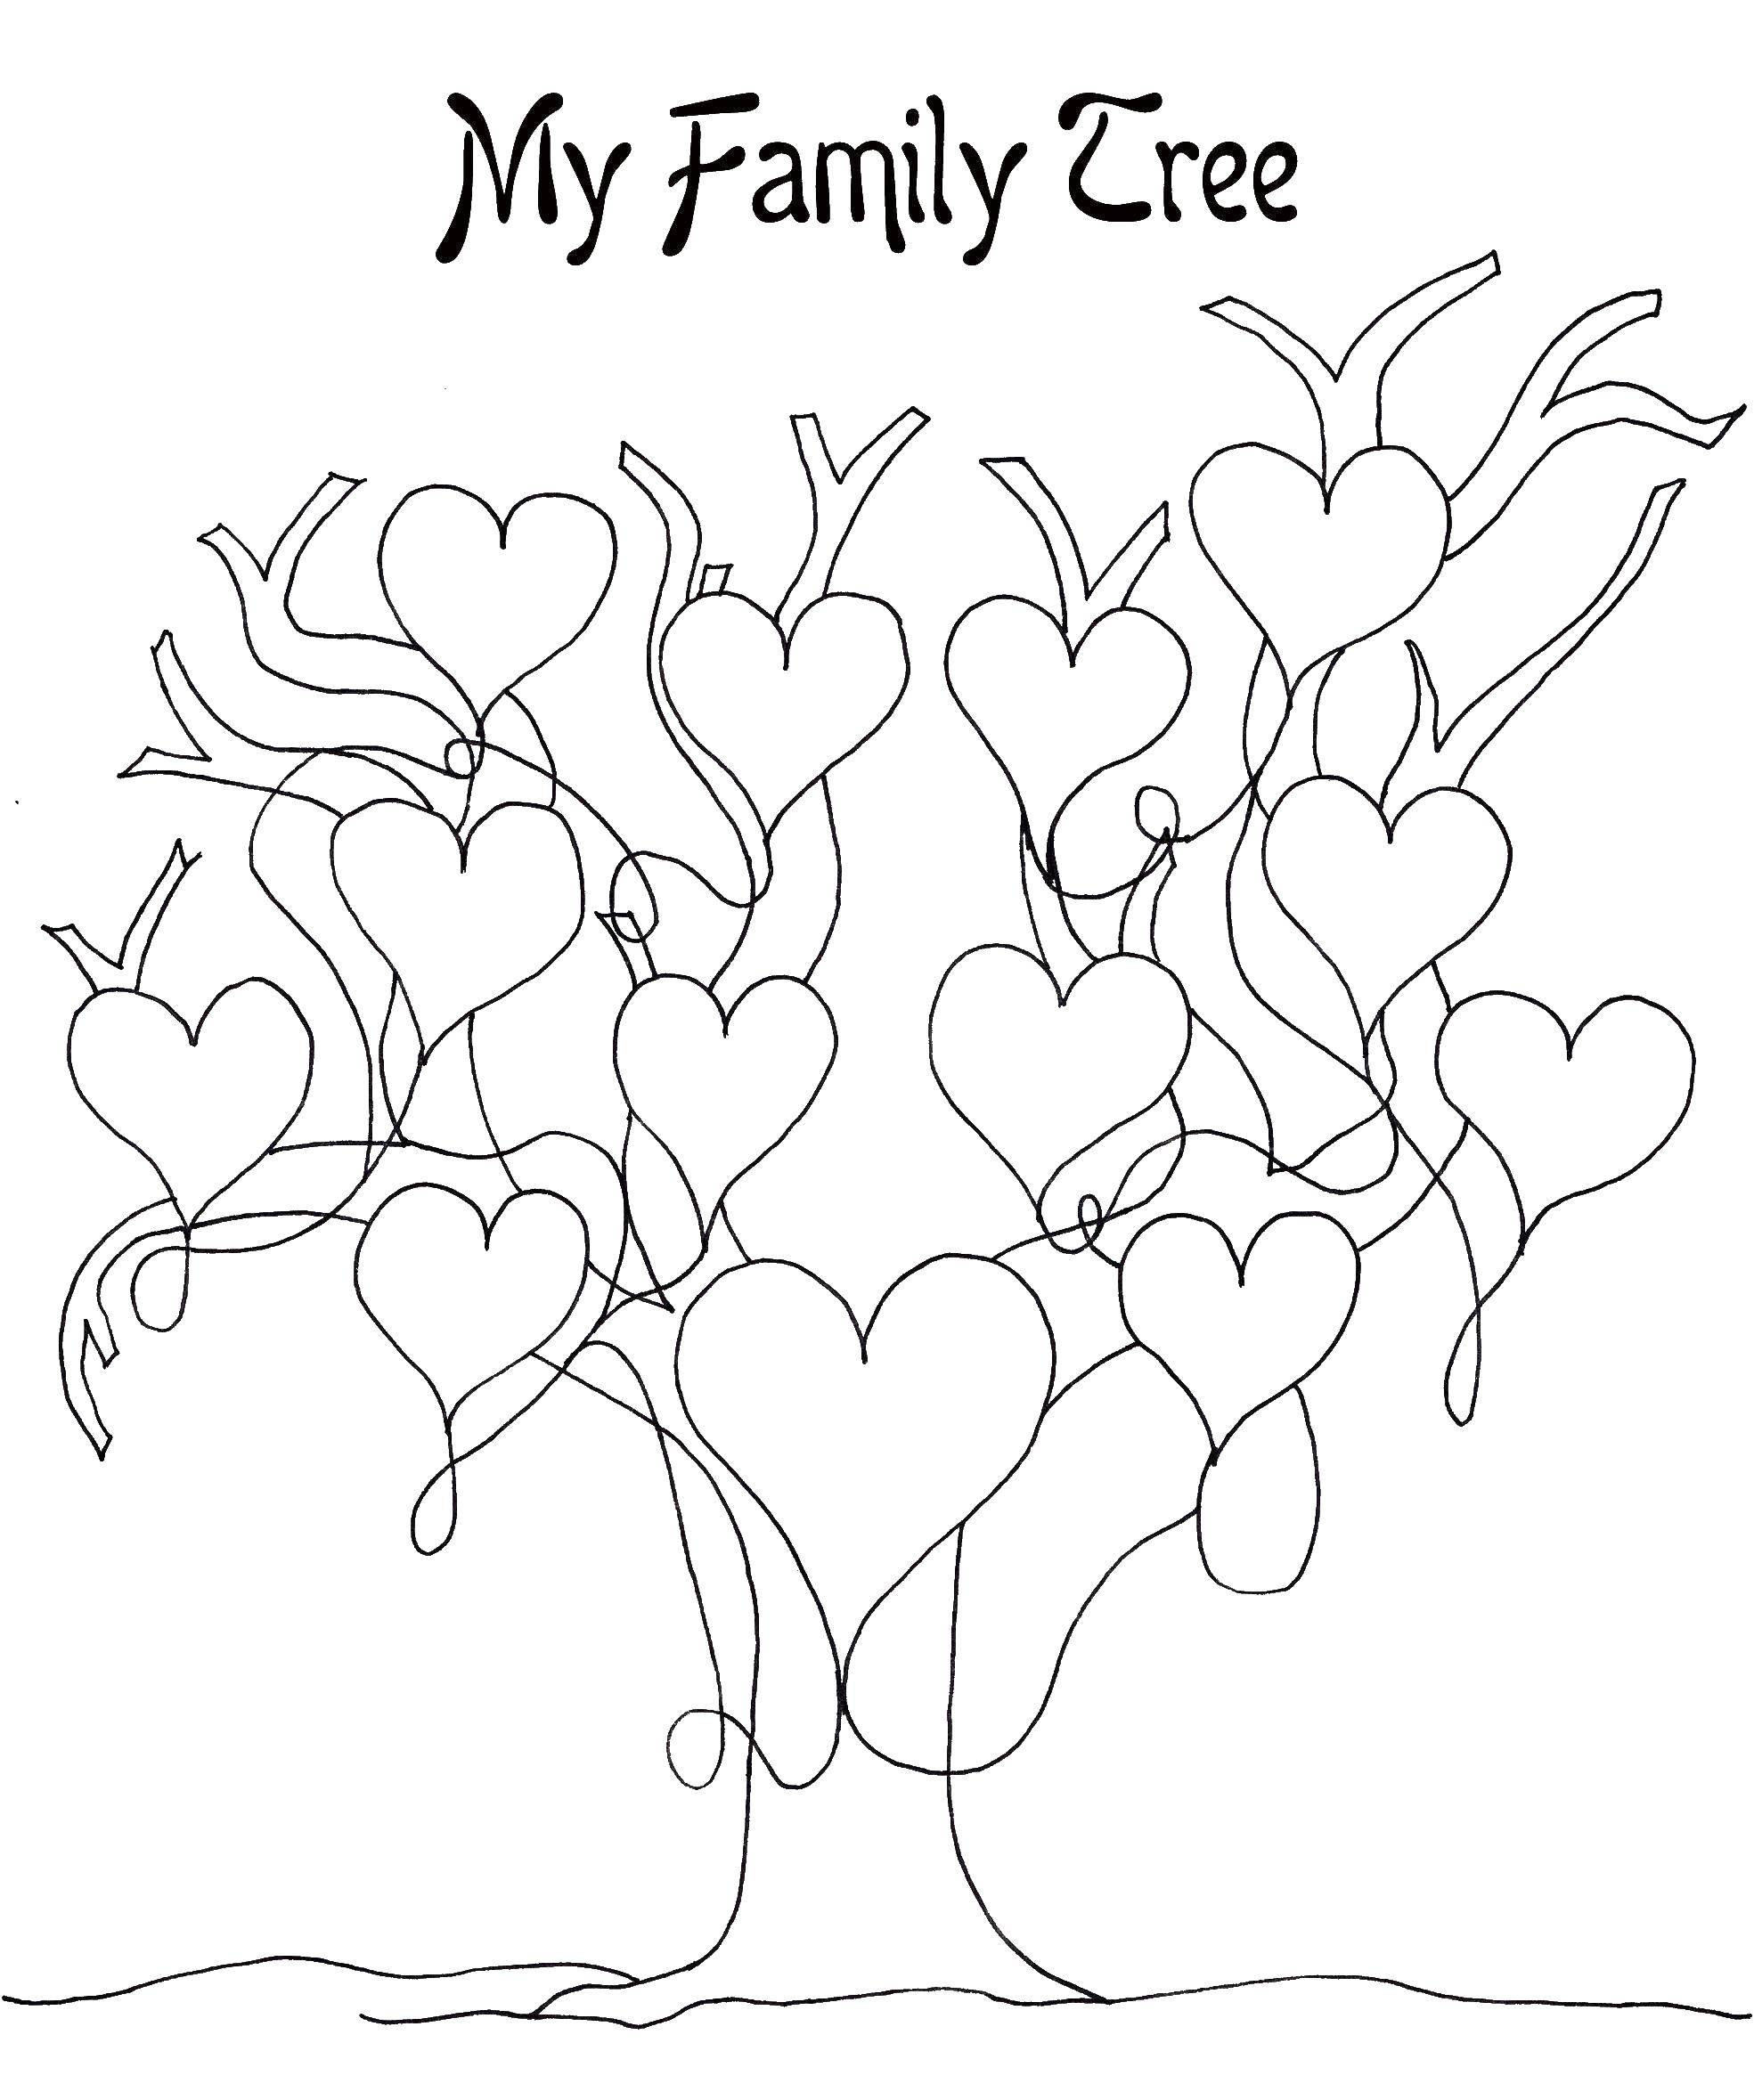 Coloring family tree category family tree tags family tree hearts